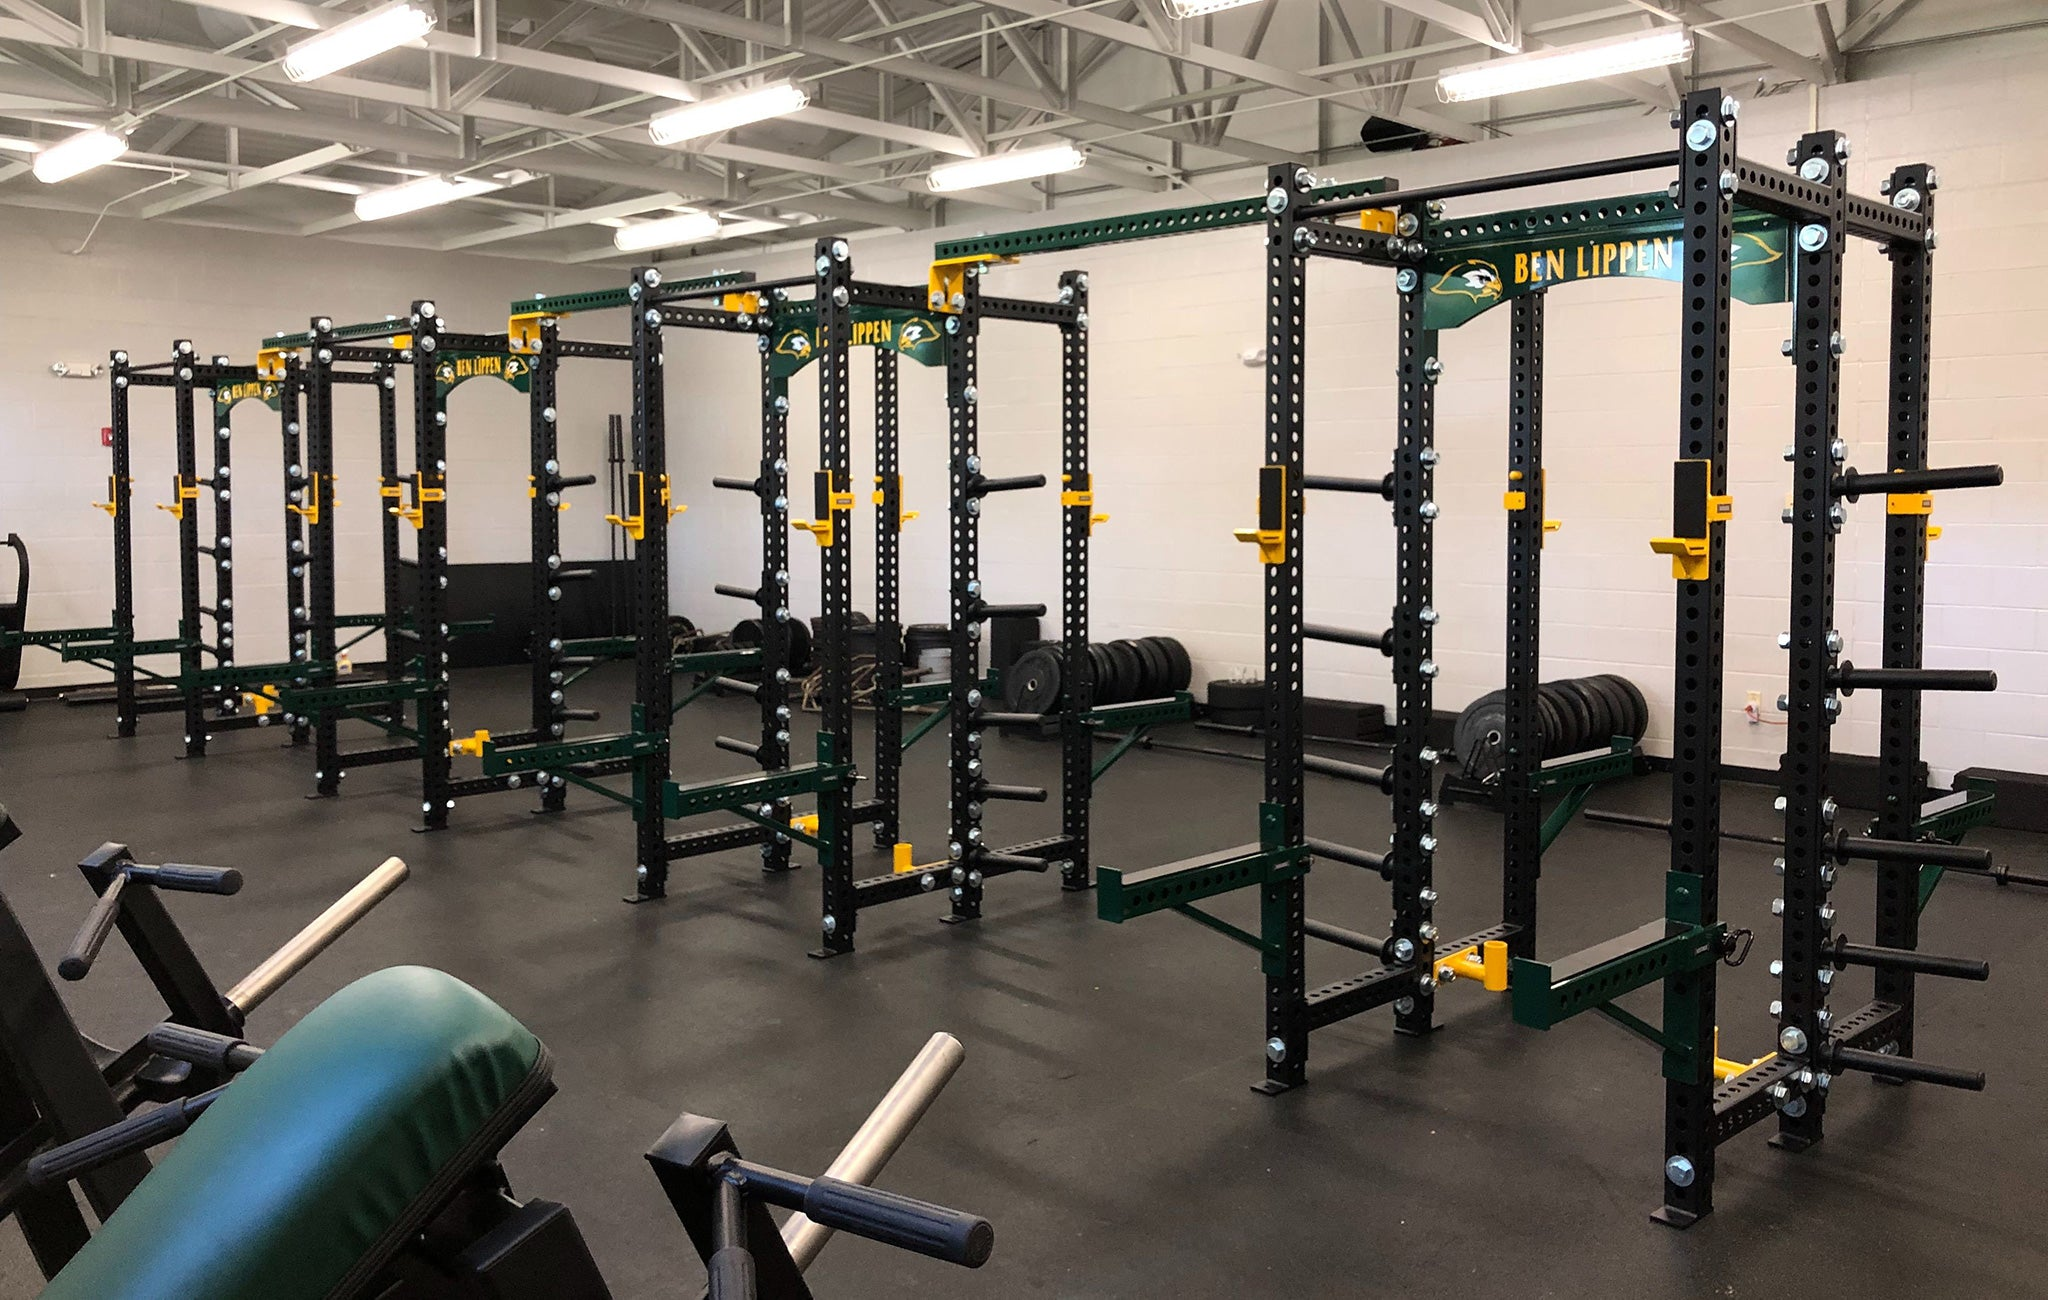 Ben Lippen High School strength and conditioning